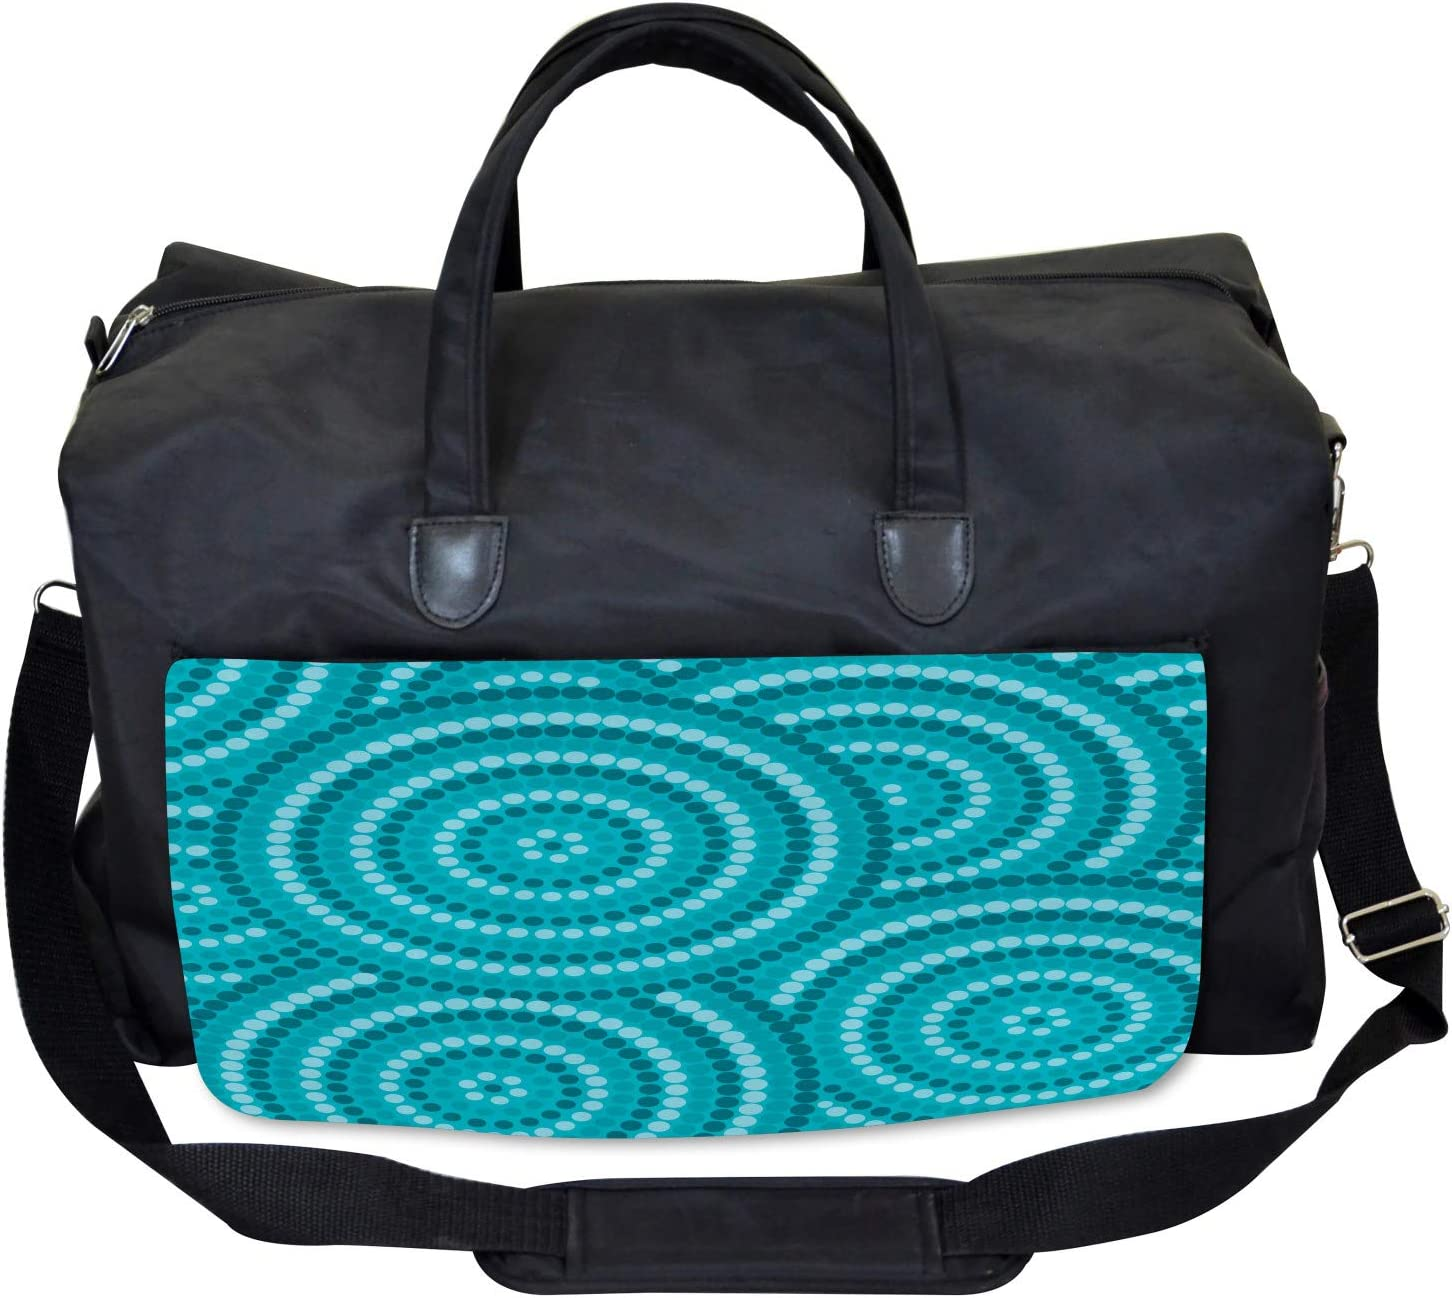 Large Weekender Carry-on Ambesonne Teal Gym Bag Abstract Australian Dots